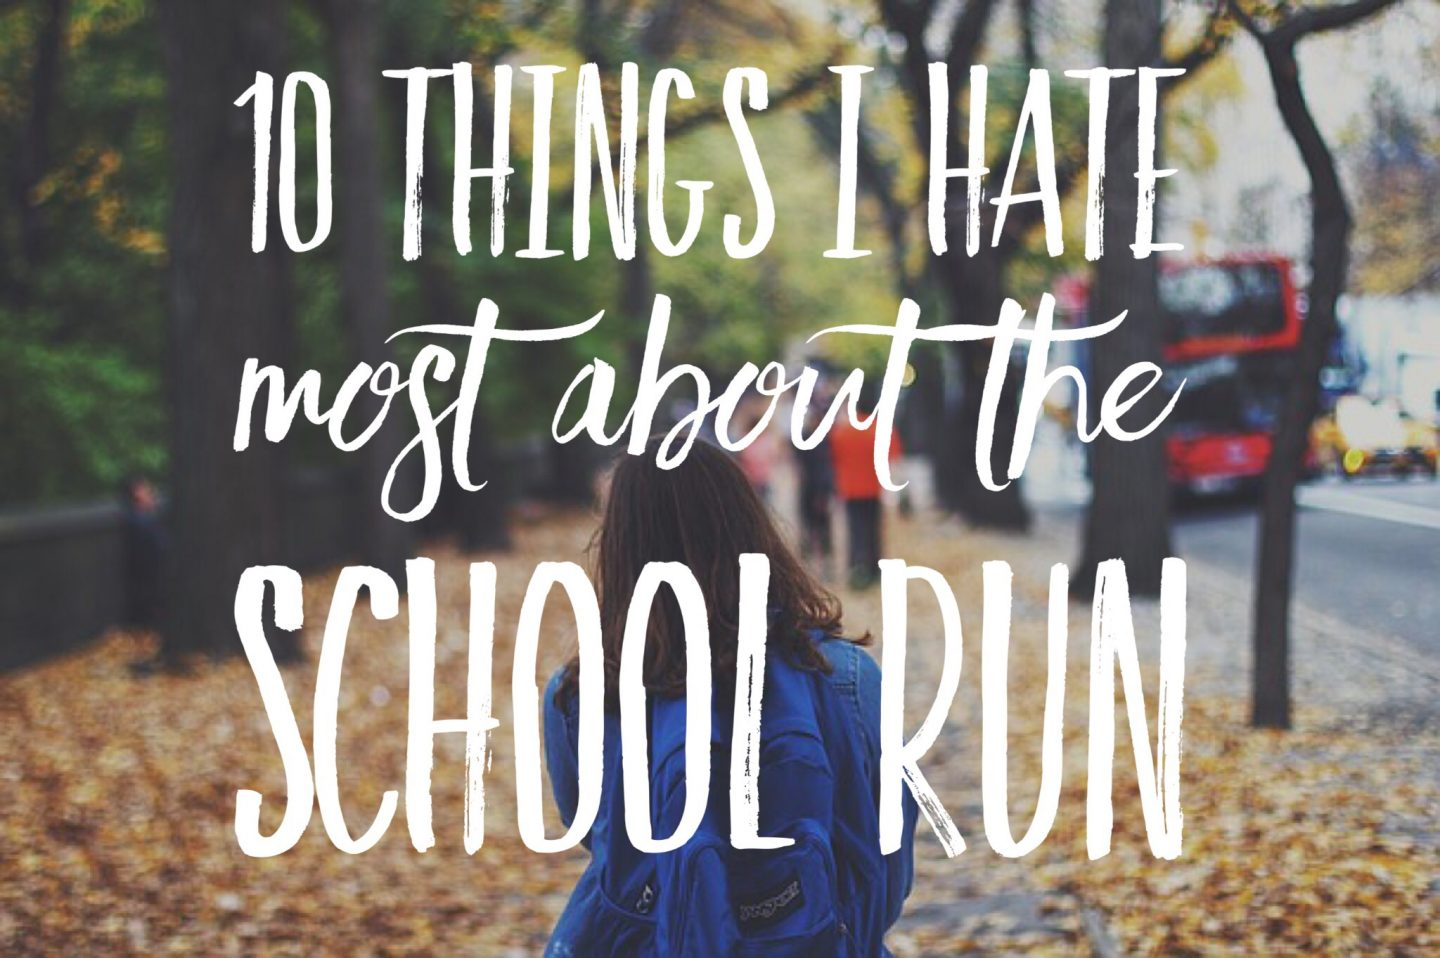 A girl walks to school amongst fallen leaves, text says 10 things I hate about the school run